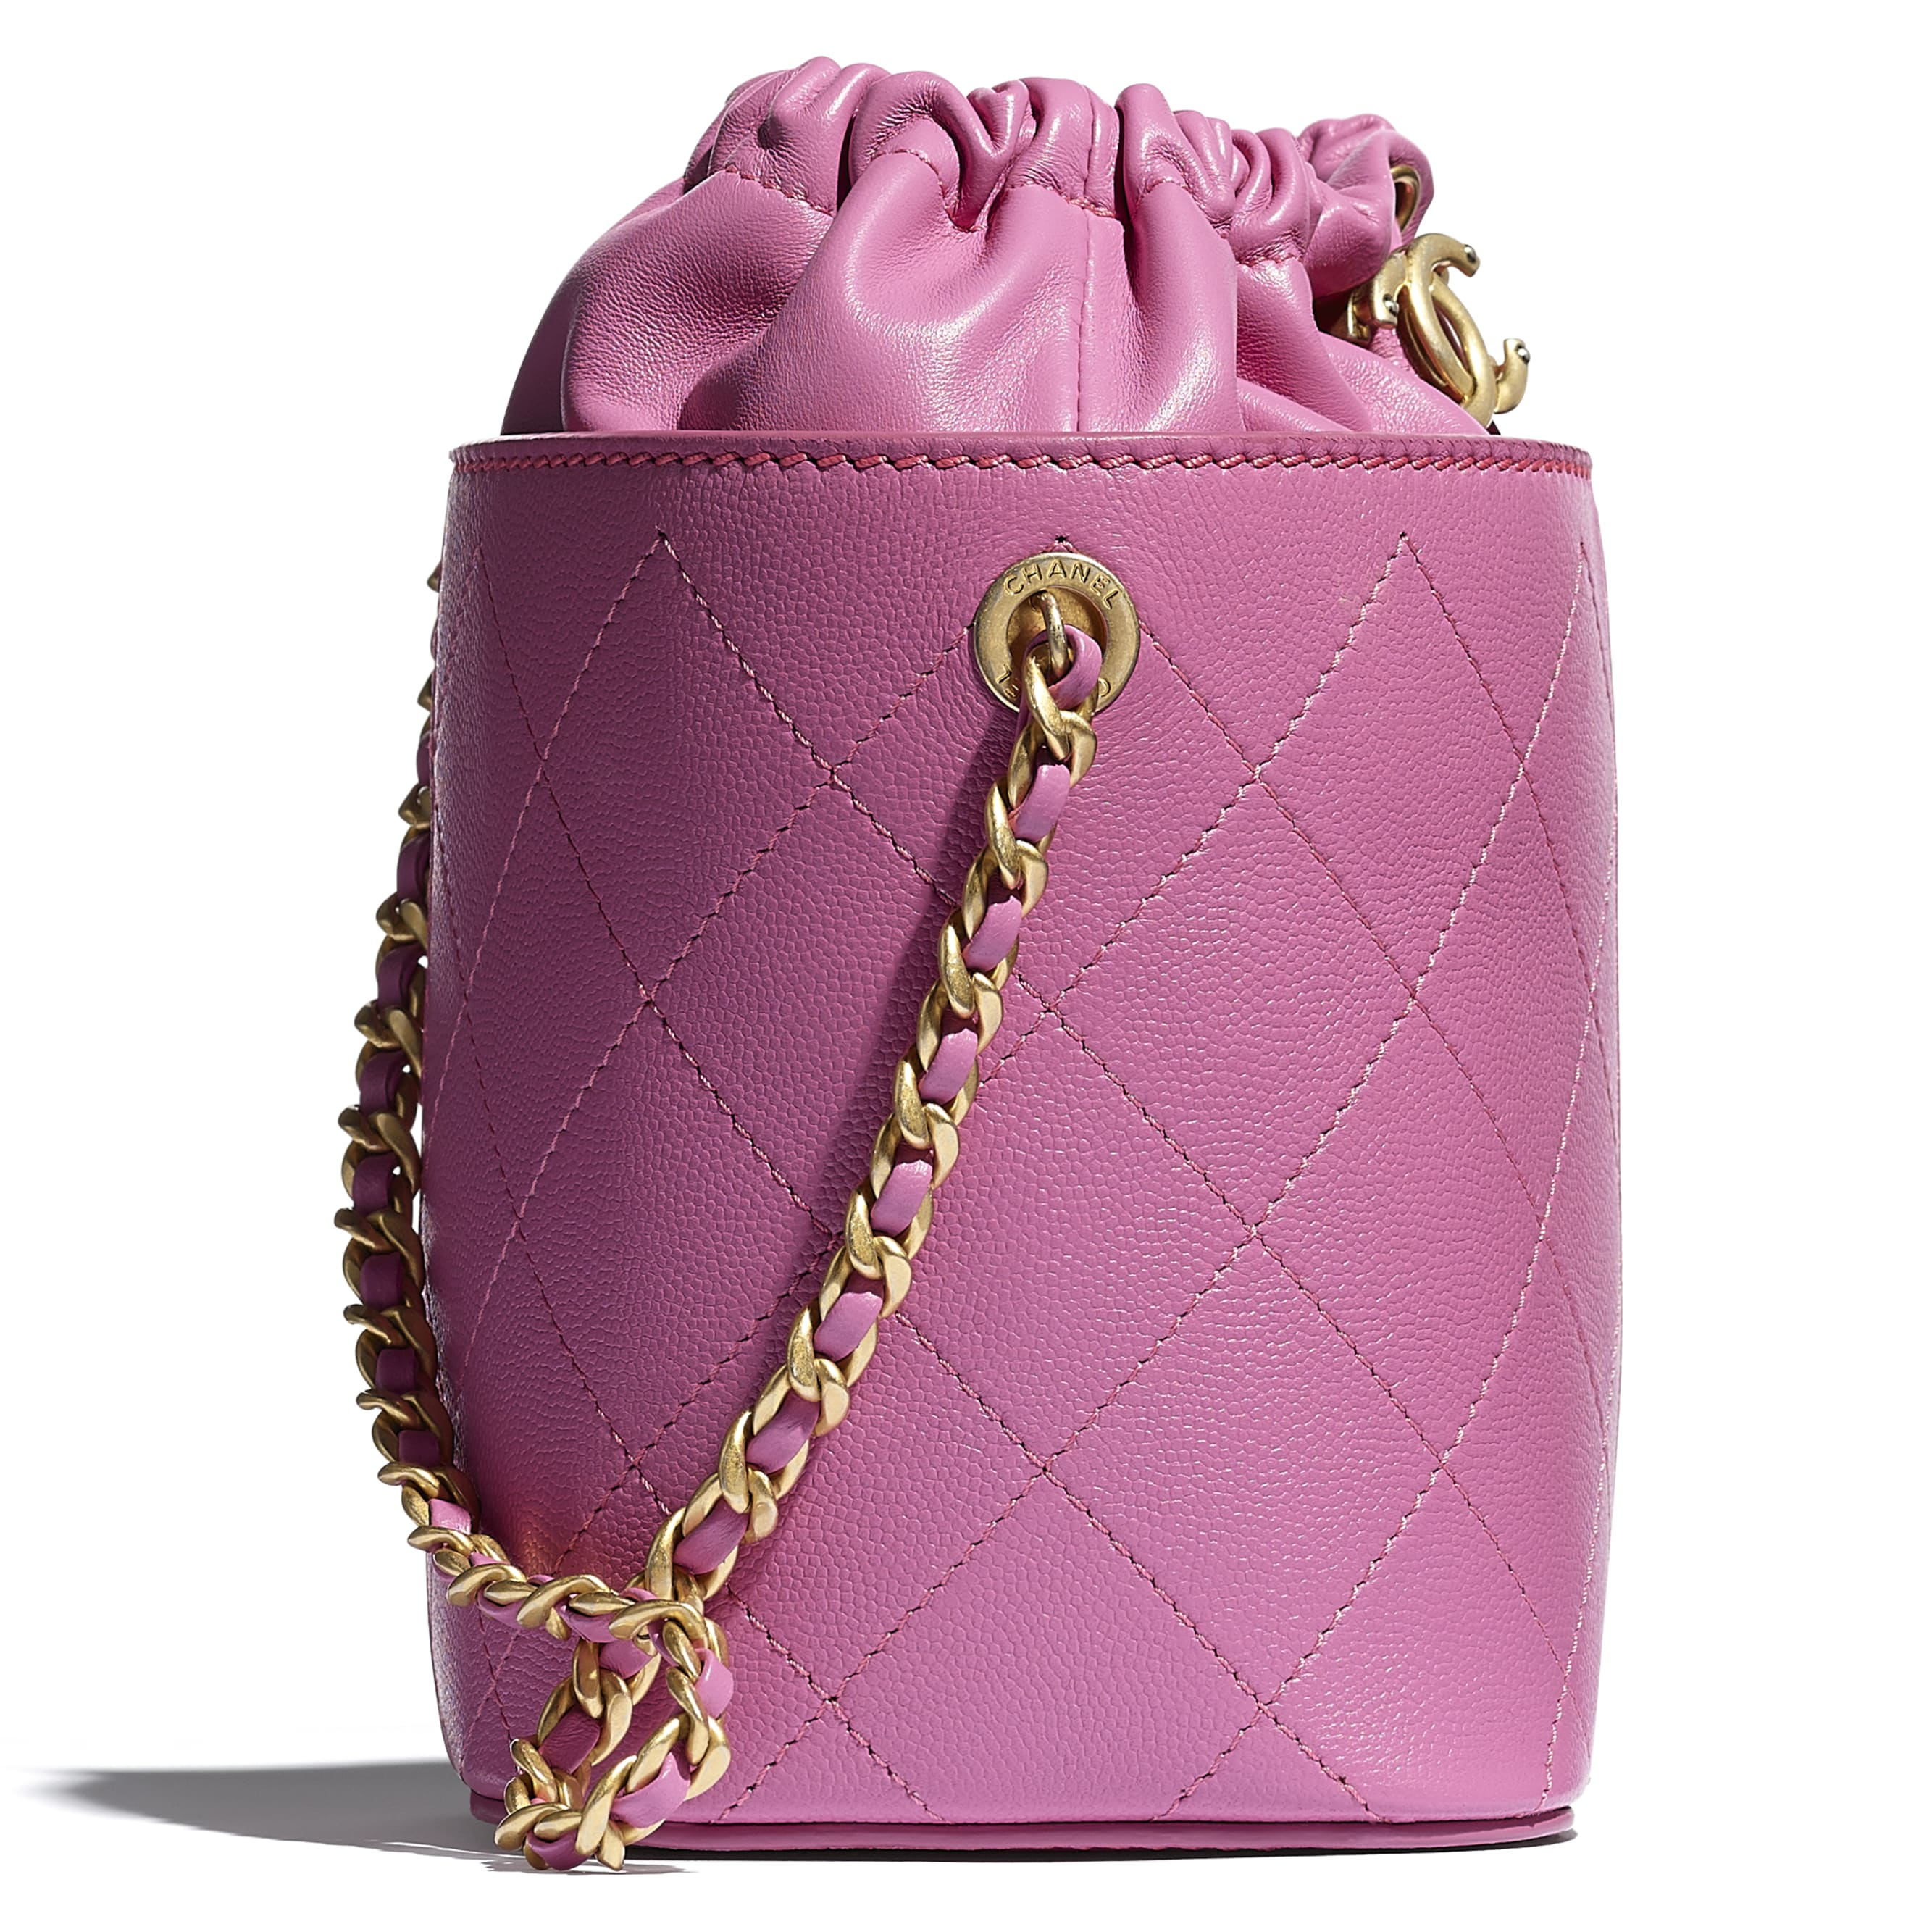 Drawstring Bag - Pink - Grained Lambskin, Smooth Lambskin & Gold-Tone Metal - CHANEL - Extra view - see standard sized version